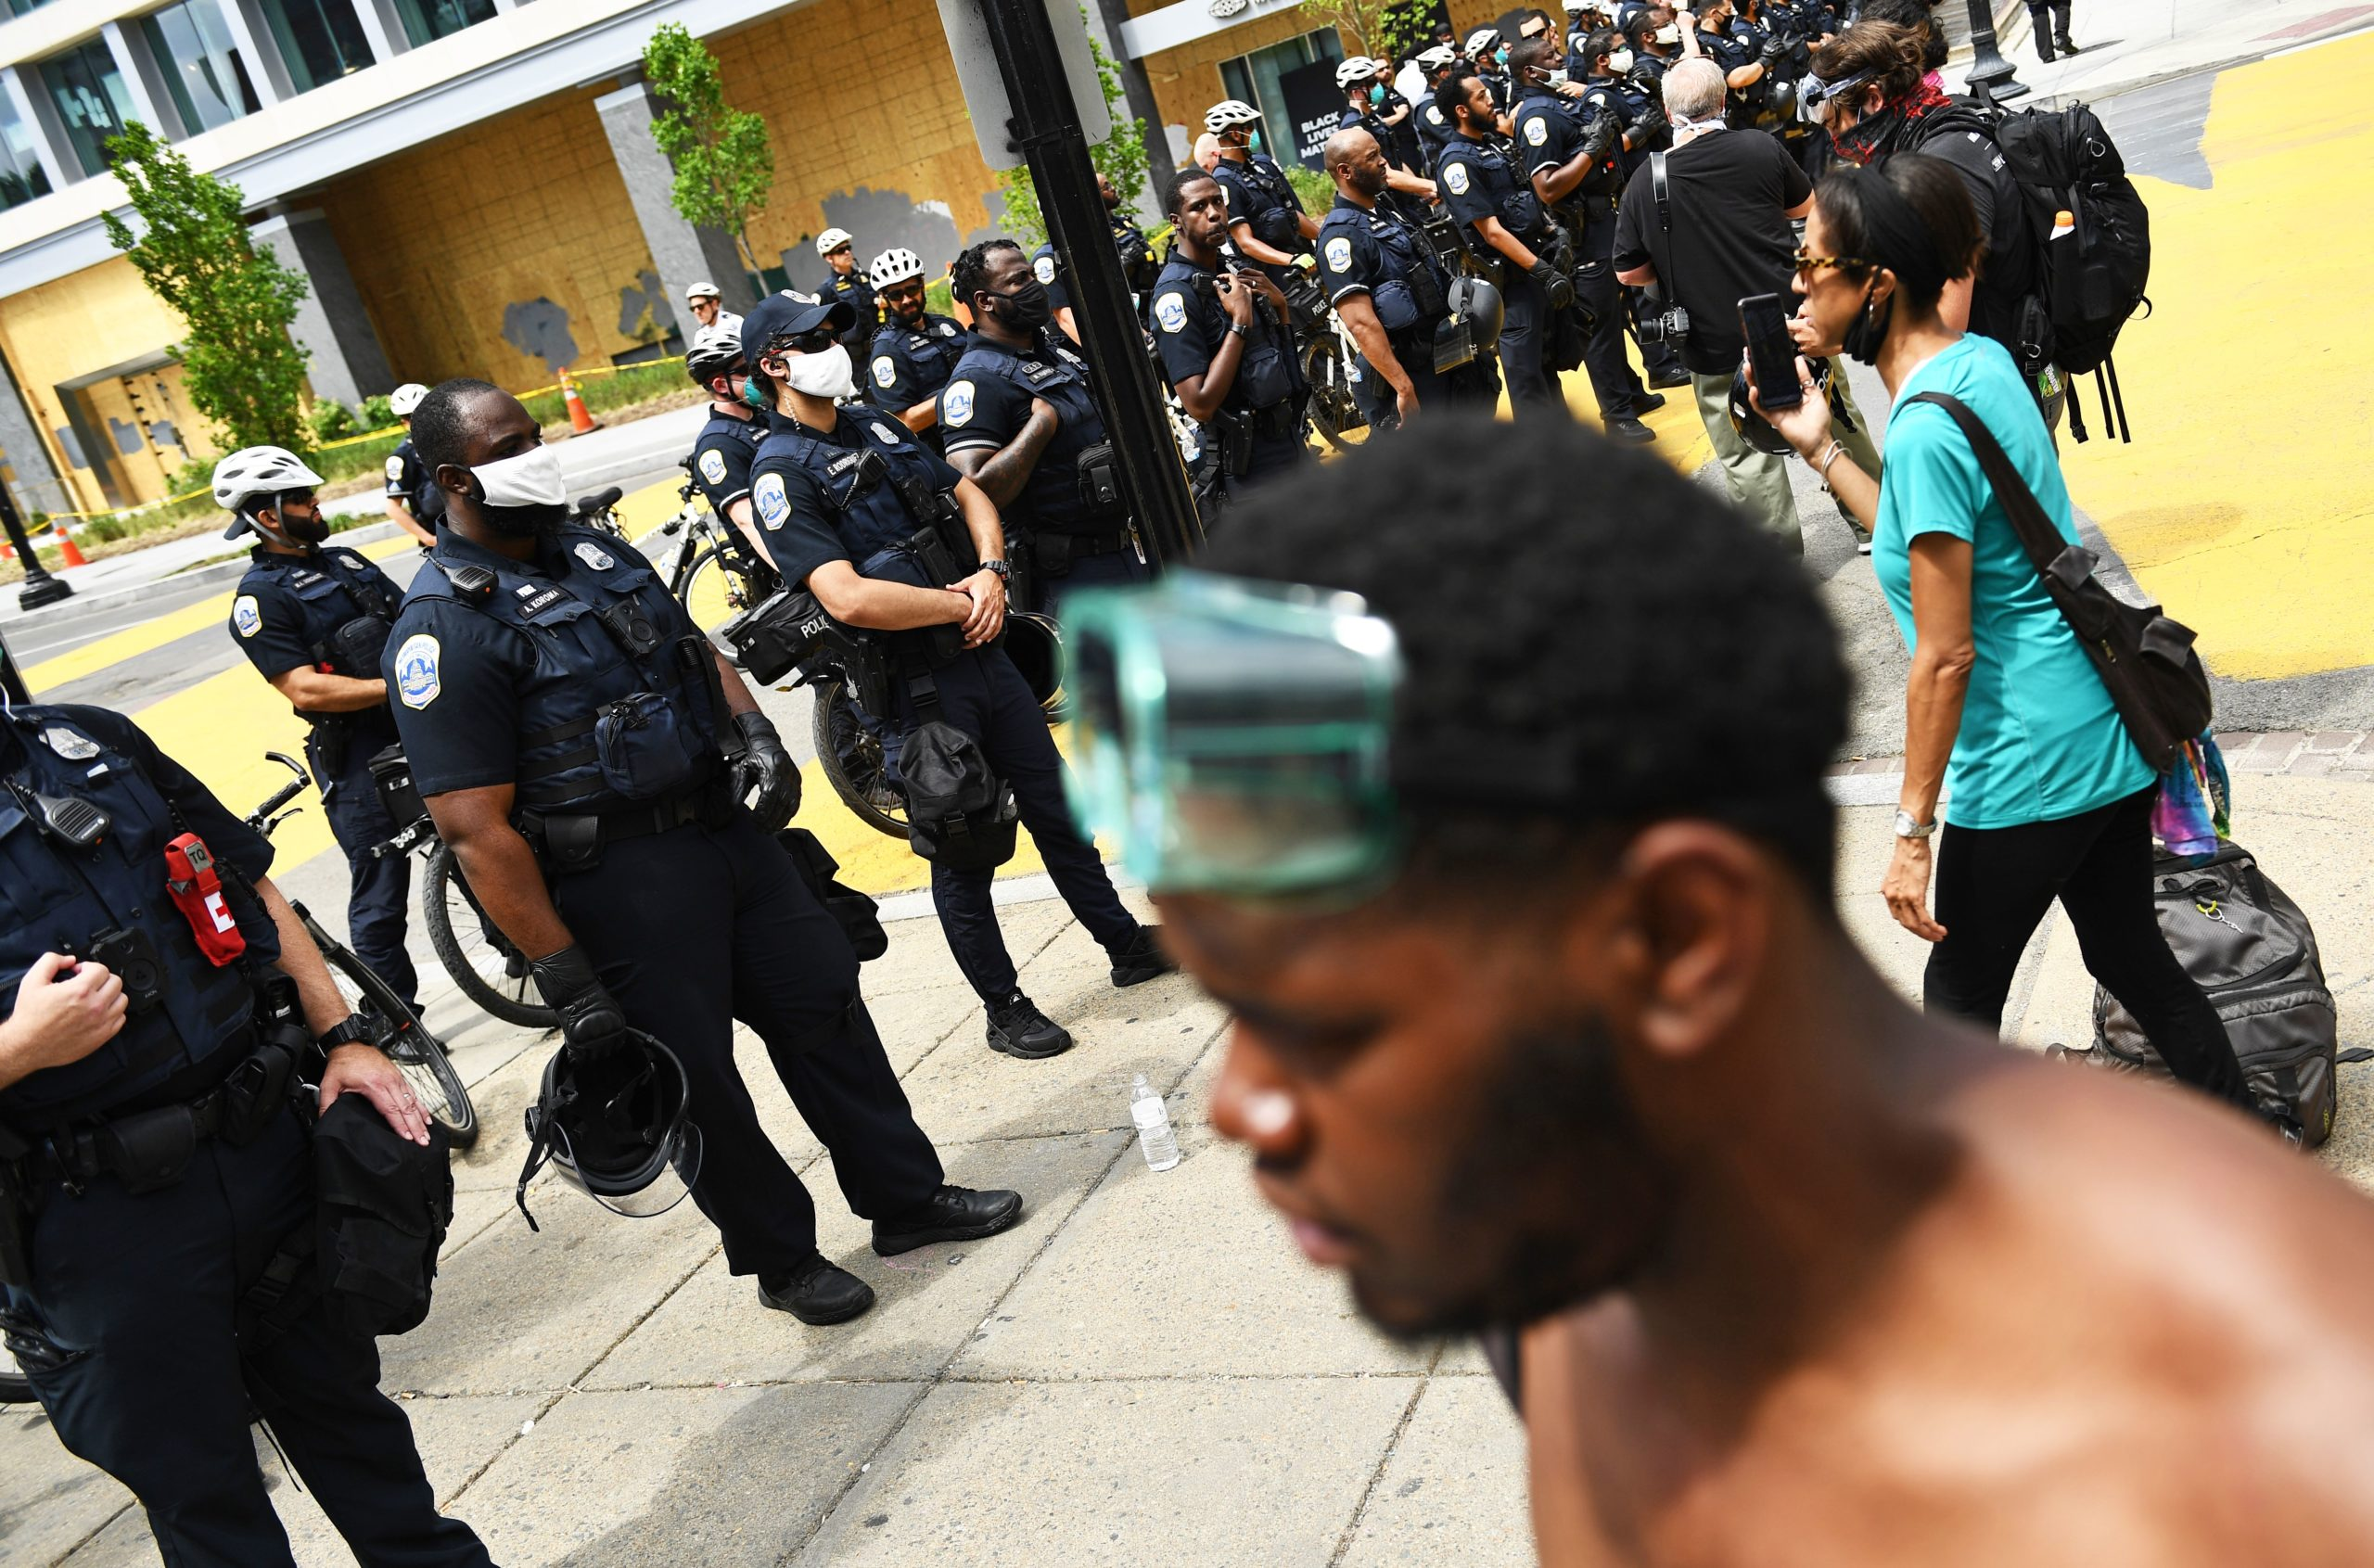 Protesters face a line of police officers in riot gear as they form a security perimeter in Washington, D.C. on June 23. (Brendan Smialowski/AFP via Getty Images)